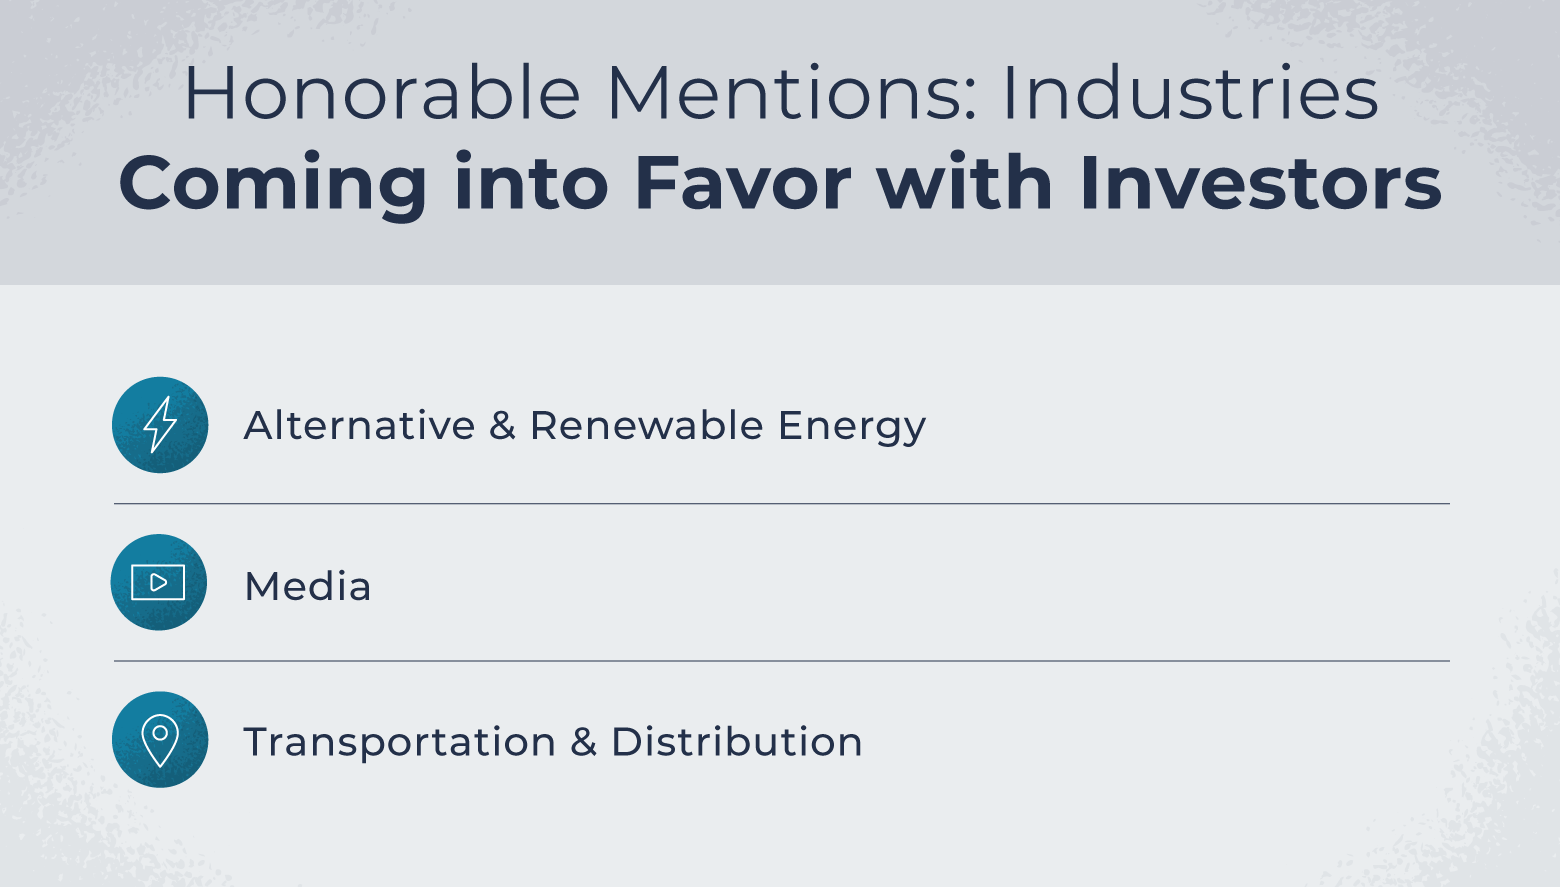 Sectors just outside of the top ten best by investor interest